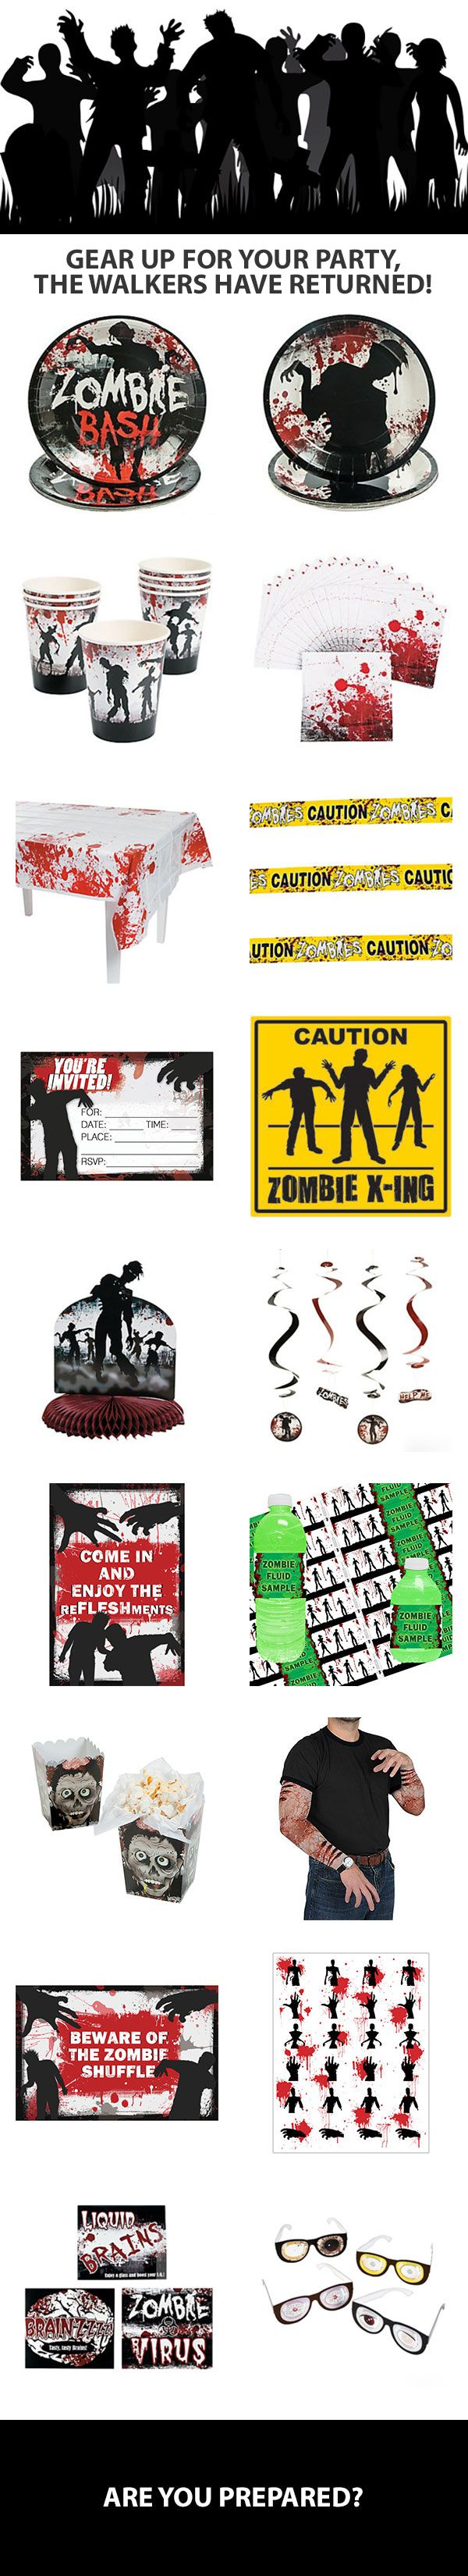 Best 20+ Zombie party decorations ideas on Pinterest | Zombie ...